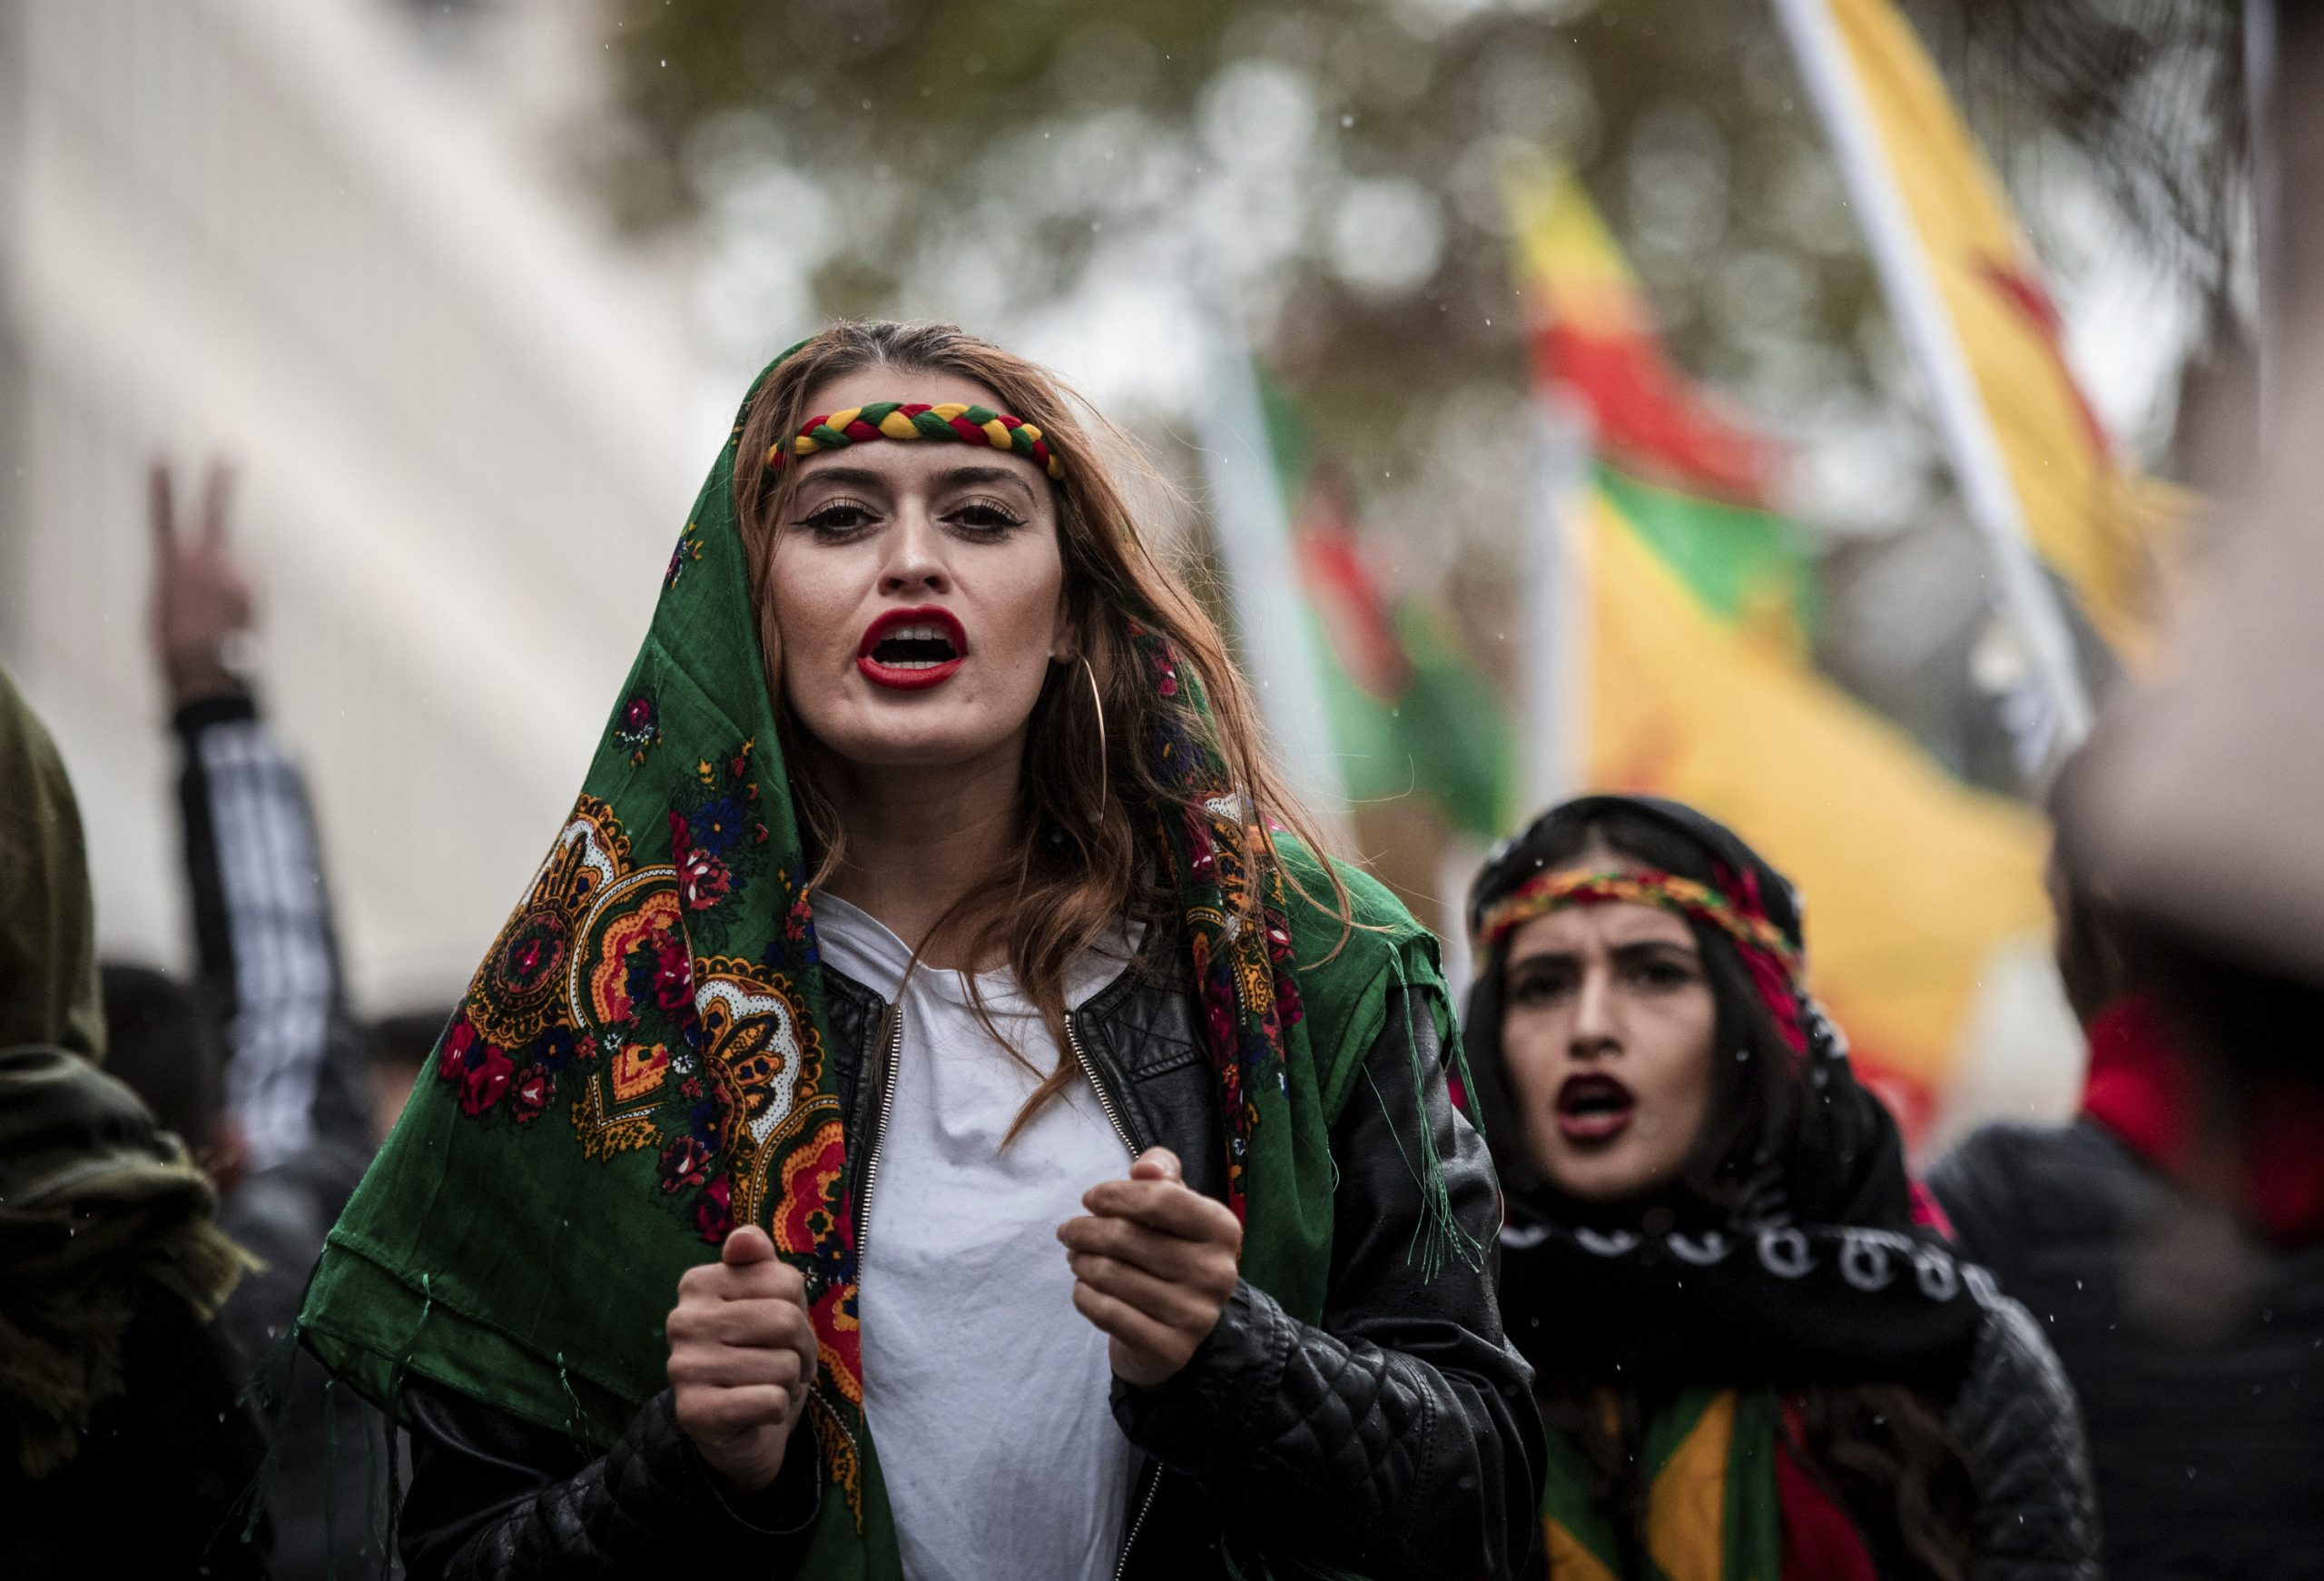 Thousands of Kurds take to the streets of Germany to demonstrate against the Turkish offensive